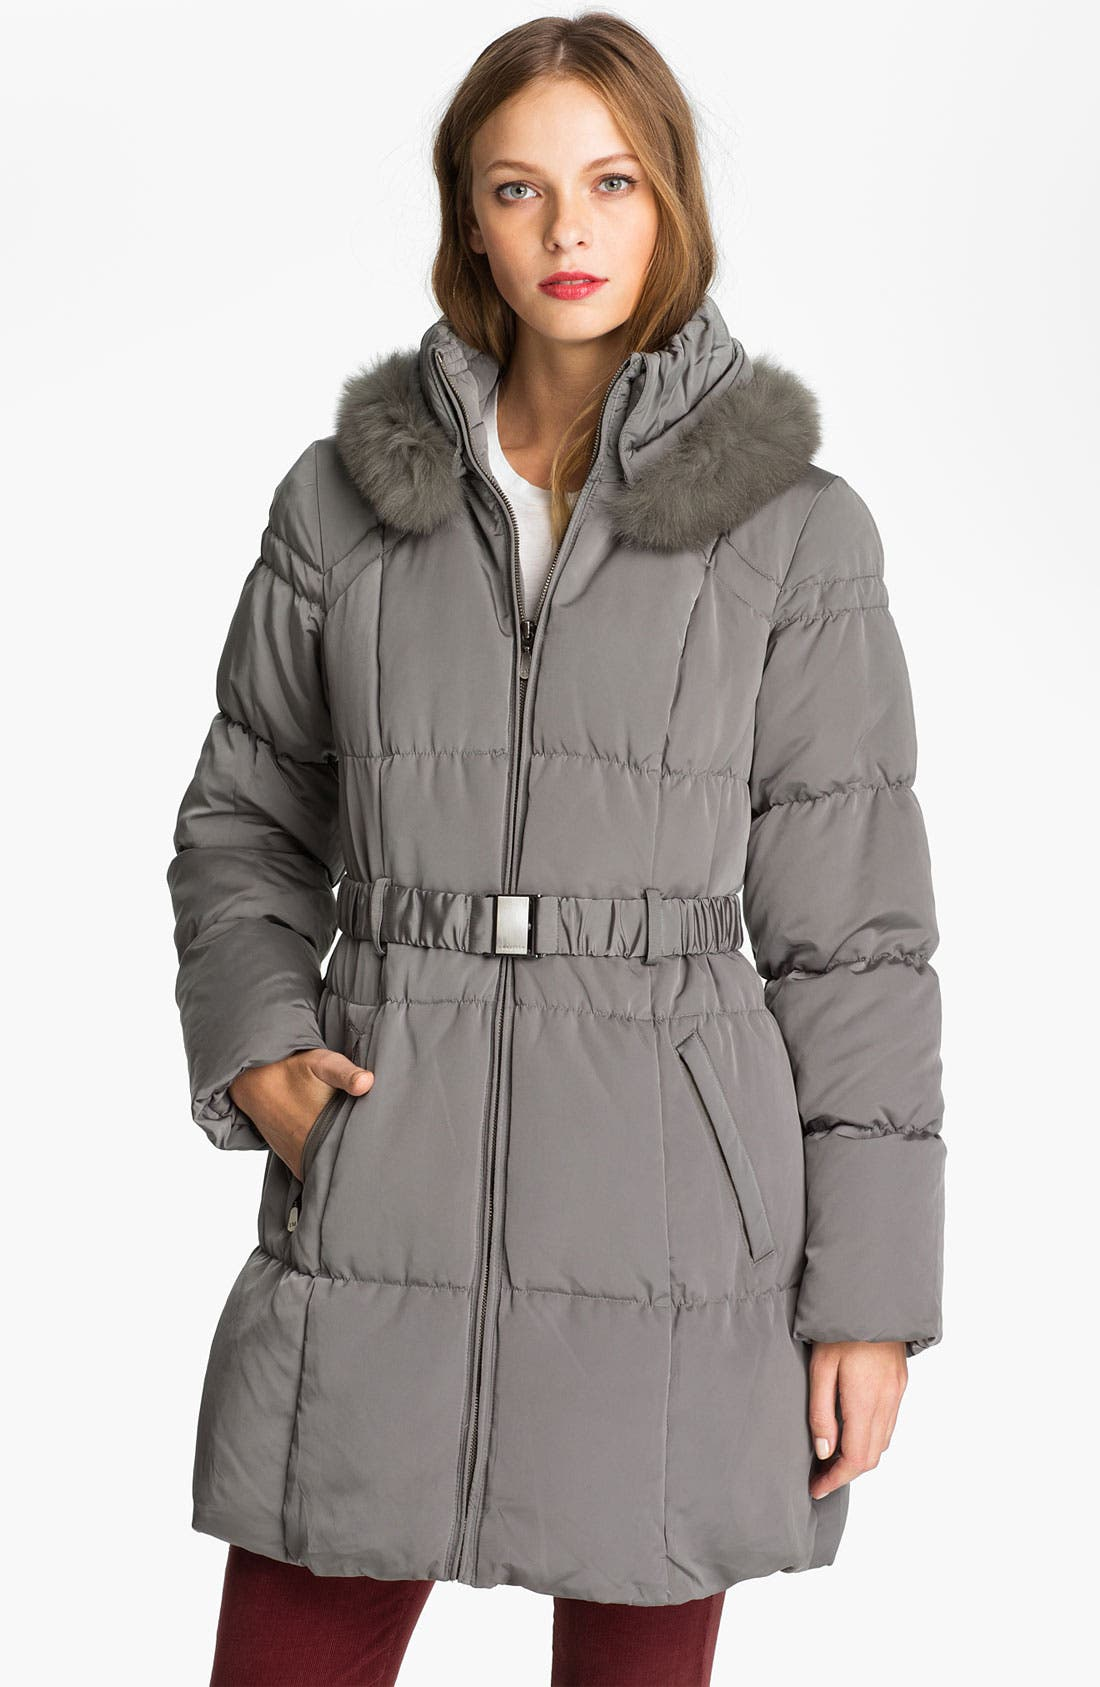 Alternate Image 1 Selected - 1 Madison Genuine Fox Fur Trim Quilted Coat (Online Exclusive)